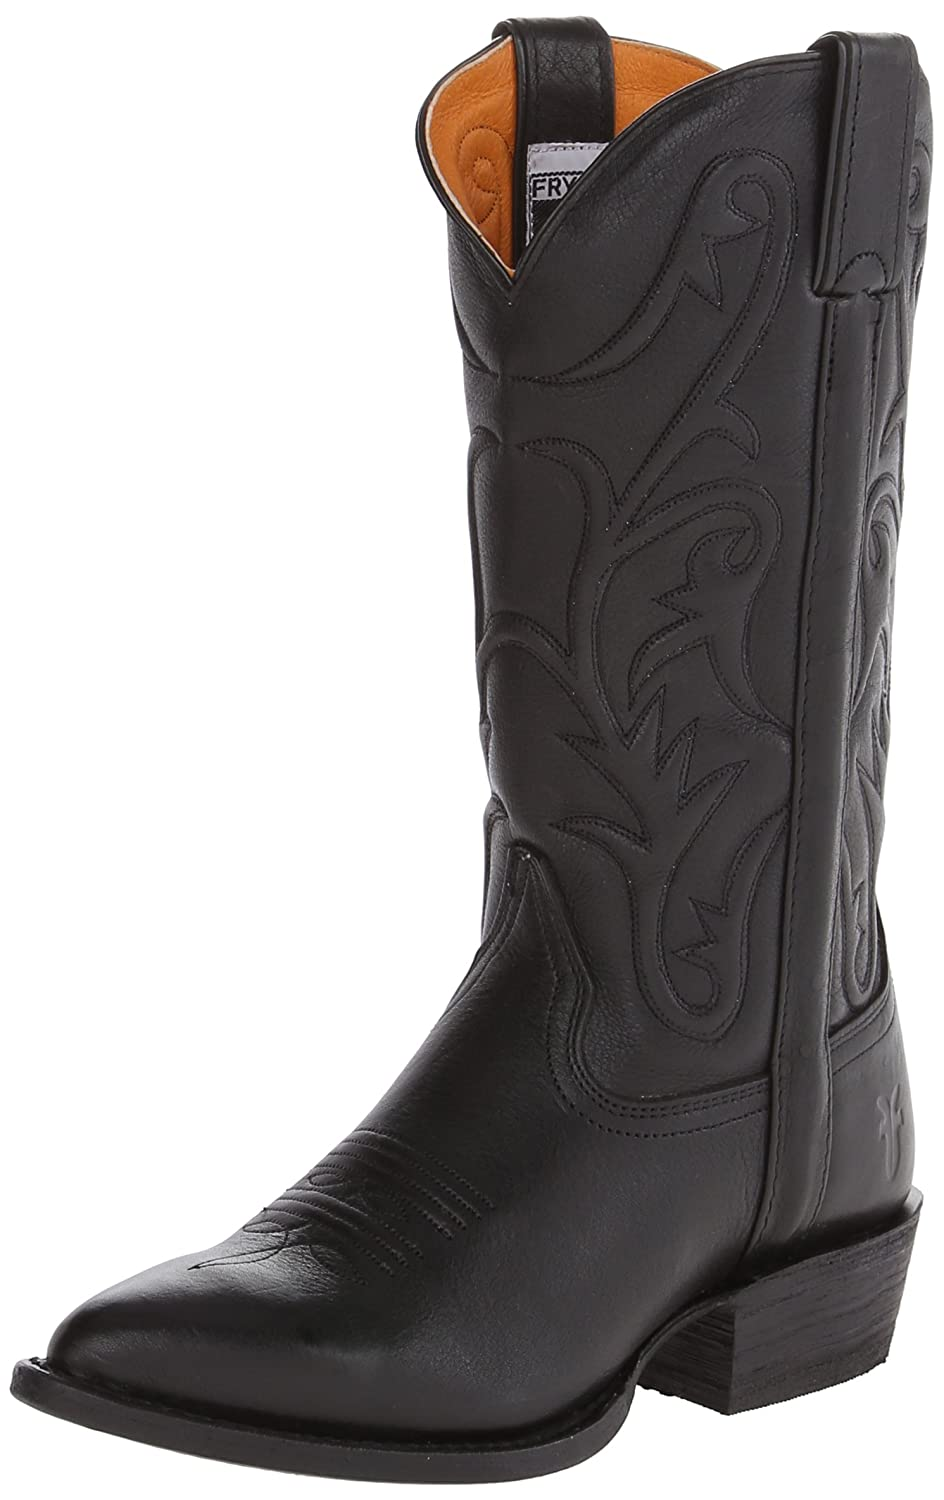 FRYE Women's Bruce Pull-On Boot B000TKHMBG 7 B(M) US|Black